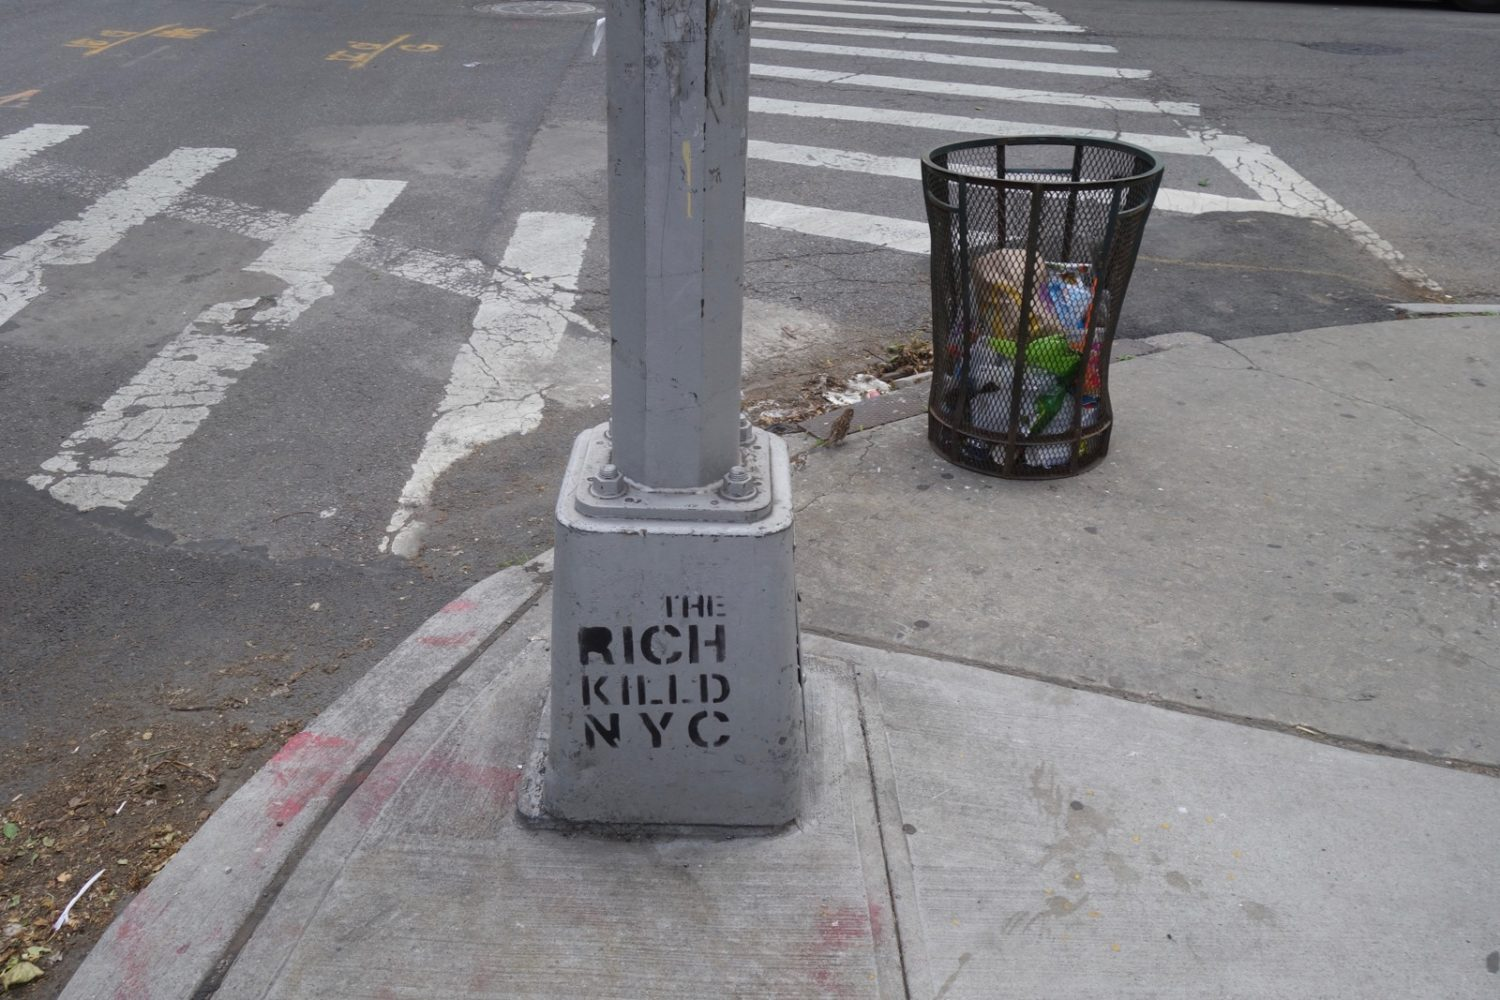 The Rich Killed NYC graffiti in Brooklyn